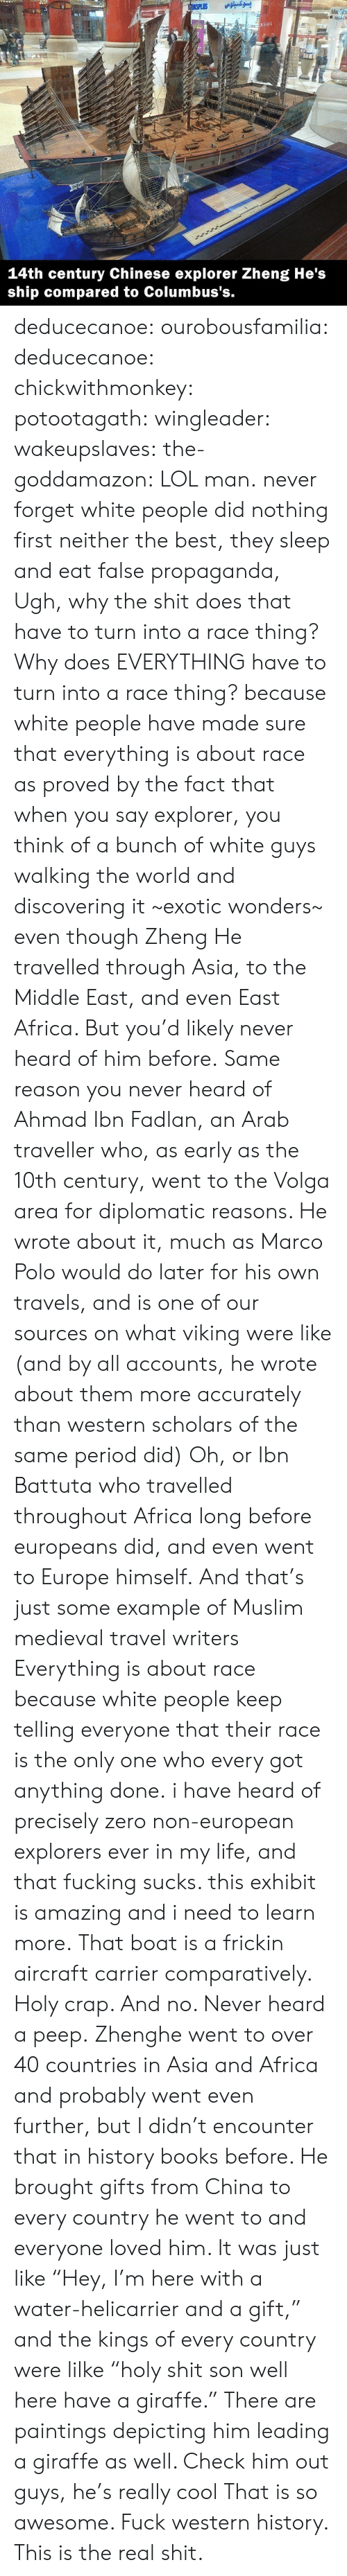 "Exhibit: بوكسيلوس  SPLUS  Ma  A  83INT  14th century Chinese explorer Zheng He's  ship compared to Columbus's. deducecanoe: ourobousfamilia:  deducecanoe:  chickwithmonkey:  potootagath:  wingleader:  wakeupslaves:  the-goddamazon:  LOL man.  never forget white people did nothing first neither the best, they sleep and eat false propaganda,  Ugh, why the shit does that have to turn into a race thing? Why does EVERYTHING have to turn into a race thing?  because white people have made sure that everything is about race as proved by the fact that when you say explorer, you think of a bunch of white guys walking the world and discovering it ~exotic wonders~ even though Zheng He travelled through Asia, to the Middle East, and even East Africa. But you'd likely never heard of him before. Same reason you never heard of Ahmad Ibn Fadlan, an Arab traveller who, as early as the 10th century, went to the Volga area for diplomatic reasons. He wrote about it, much as Marco Polo would do later for his own travels, and is one of our sources on what viking were like (and by all accounts, he wrote about them more accurately than western scholars of the same period did) Oh, or Ibn Battuta who travelled throughout Africa long before europeans did, and even went to Europe himself. And that's just some example of Muslim medieval travel writers Everything is about race because white people keep telling everyone that their race is the only one who every got anything done.  i have heard of precisely zero non-european explorers ever in my life, and that fucking sucks. this exhibit is amazing and i need to learn more.  That boat is a frickin aircraft carrier comparatively. Holy crap. And no. Never heard a peep.  Zhenghe went to over 40 countries in Asia and Africa and probably went even further, but I didn't encounter that in history books before. He brought gifts from China to every country he went to and everyone loved him. It was just like ""Hey, I'm here with a water-helicarrier and a gift,"" and the kings of every country were lilke ""holy shit son well here have a giraffe."" There are paintings depicting him leading a giraffe as well. Check him out guys, he's really cool  That is so awesome. Fuck western history. This is the real shit."